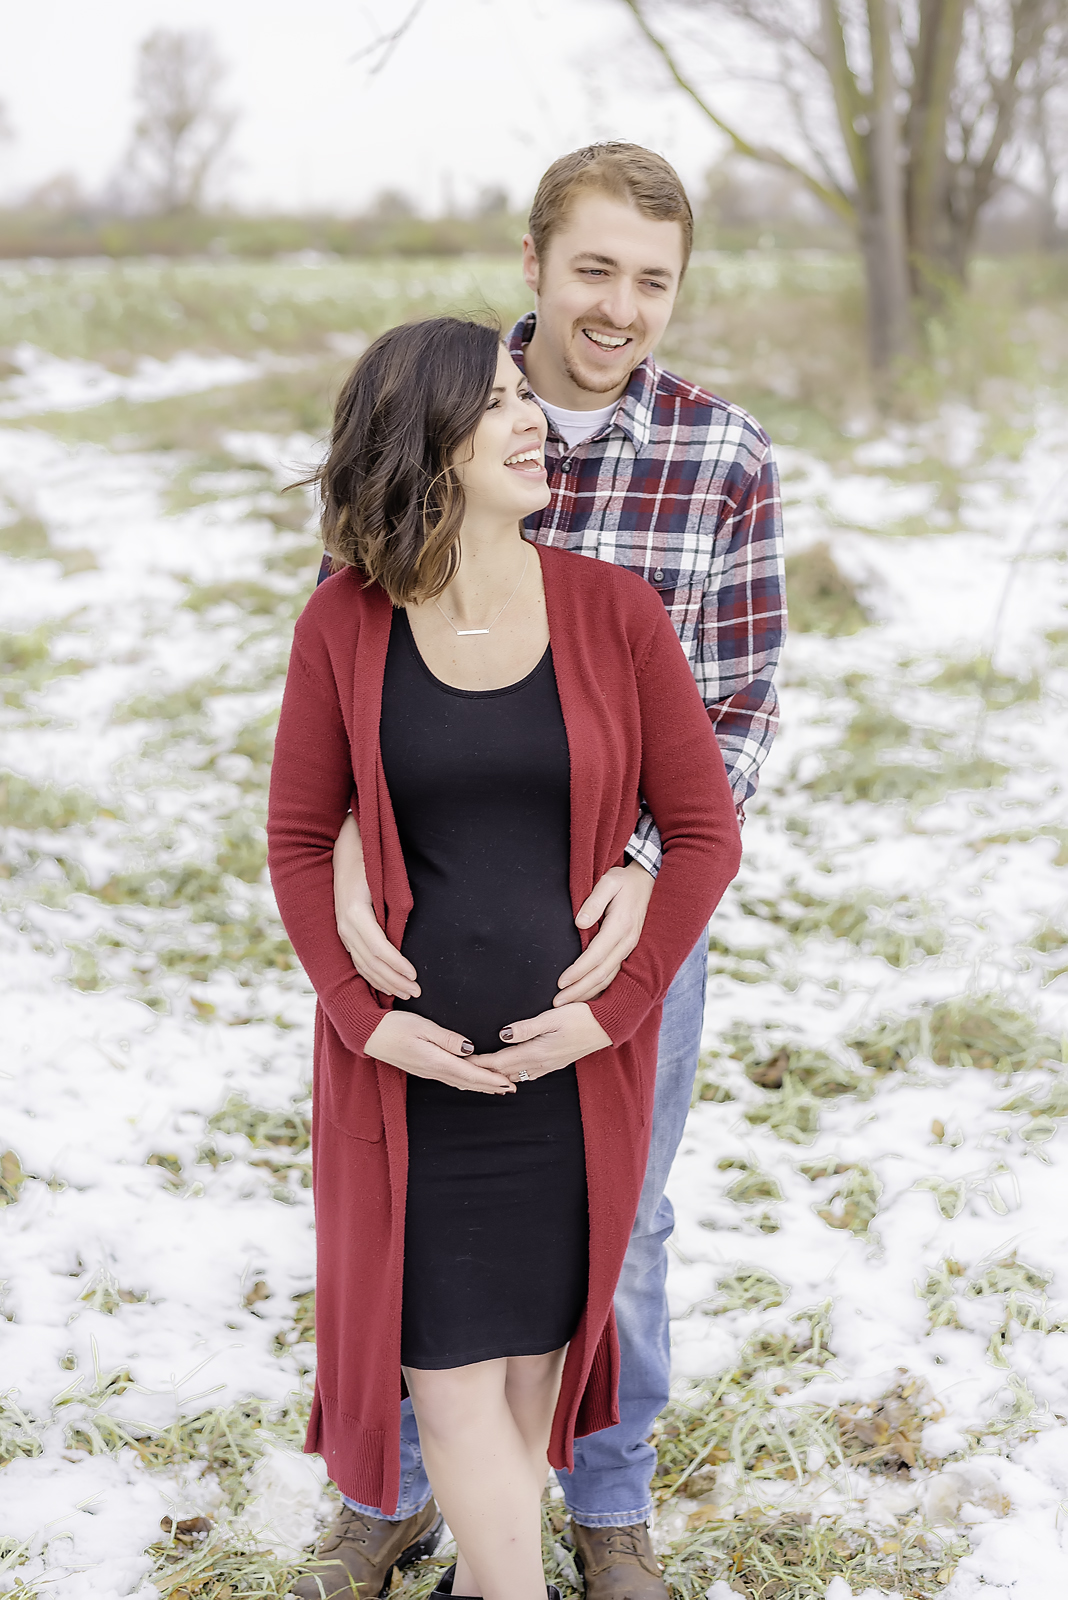 photos by Ariel- maternity session in the snow